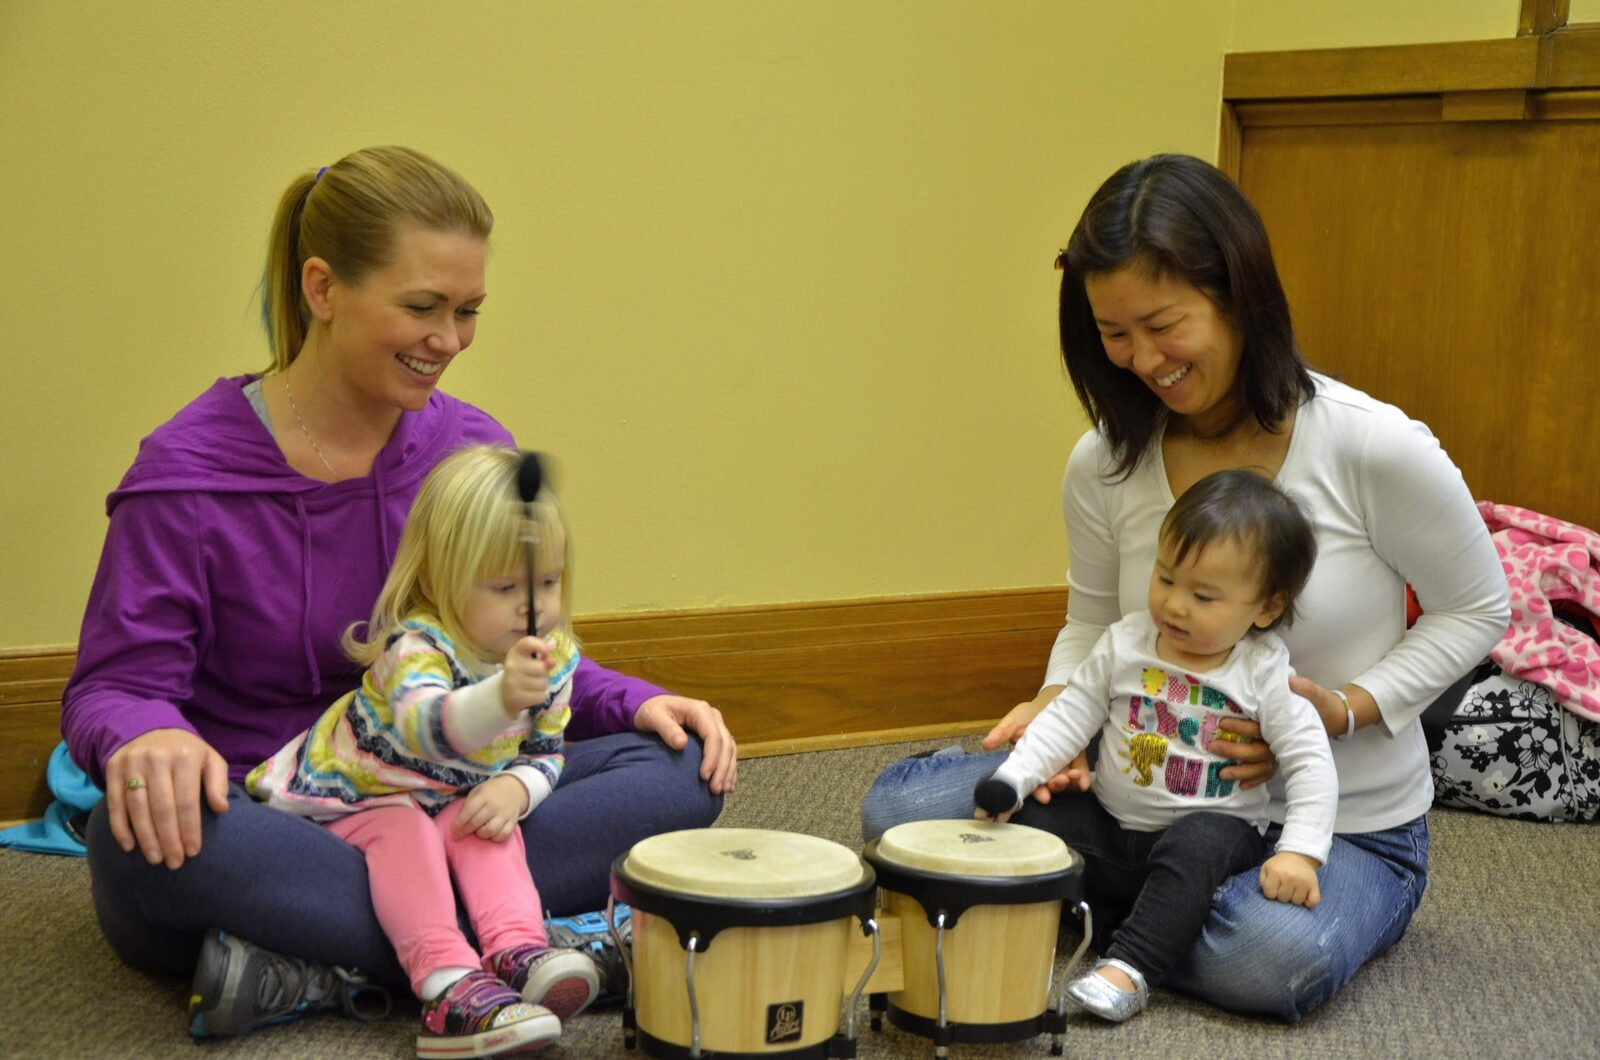 Two smiling mothers are holding their toddlers on their laps, the children are holding mallets and playing a drum